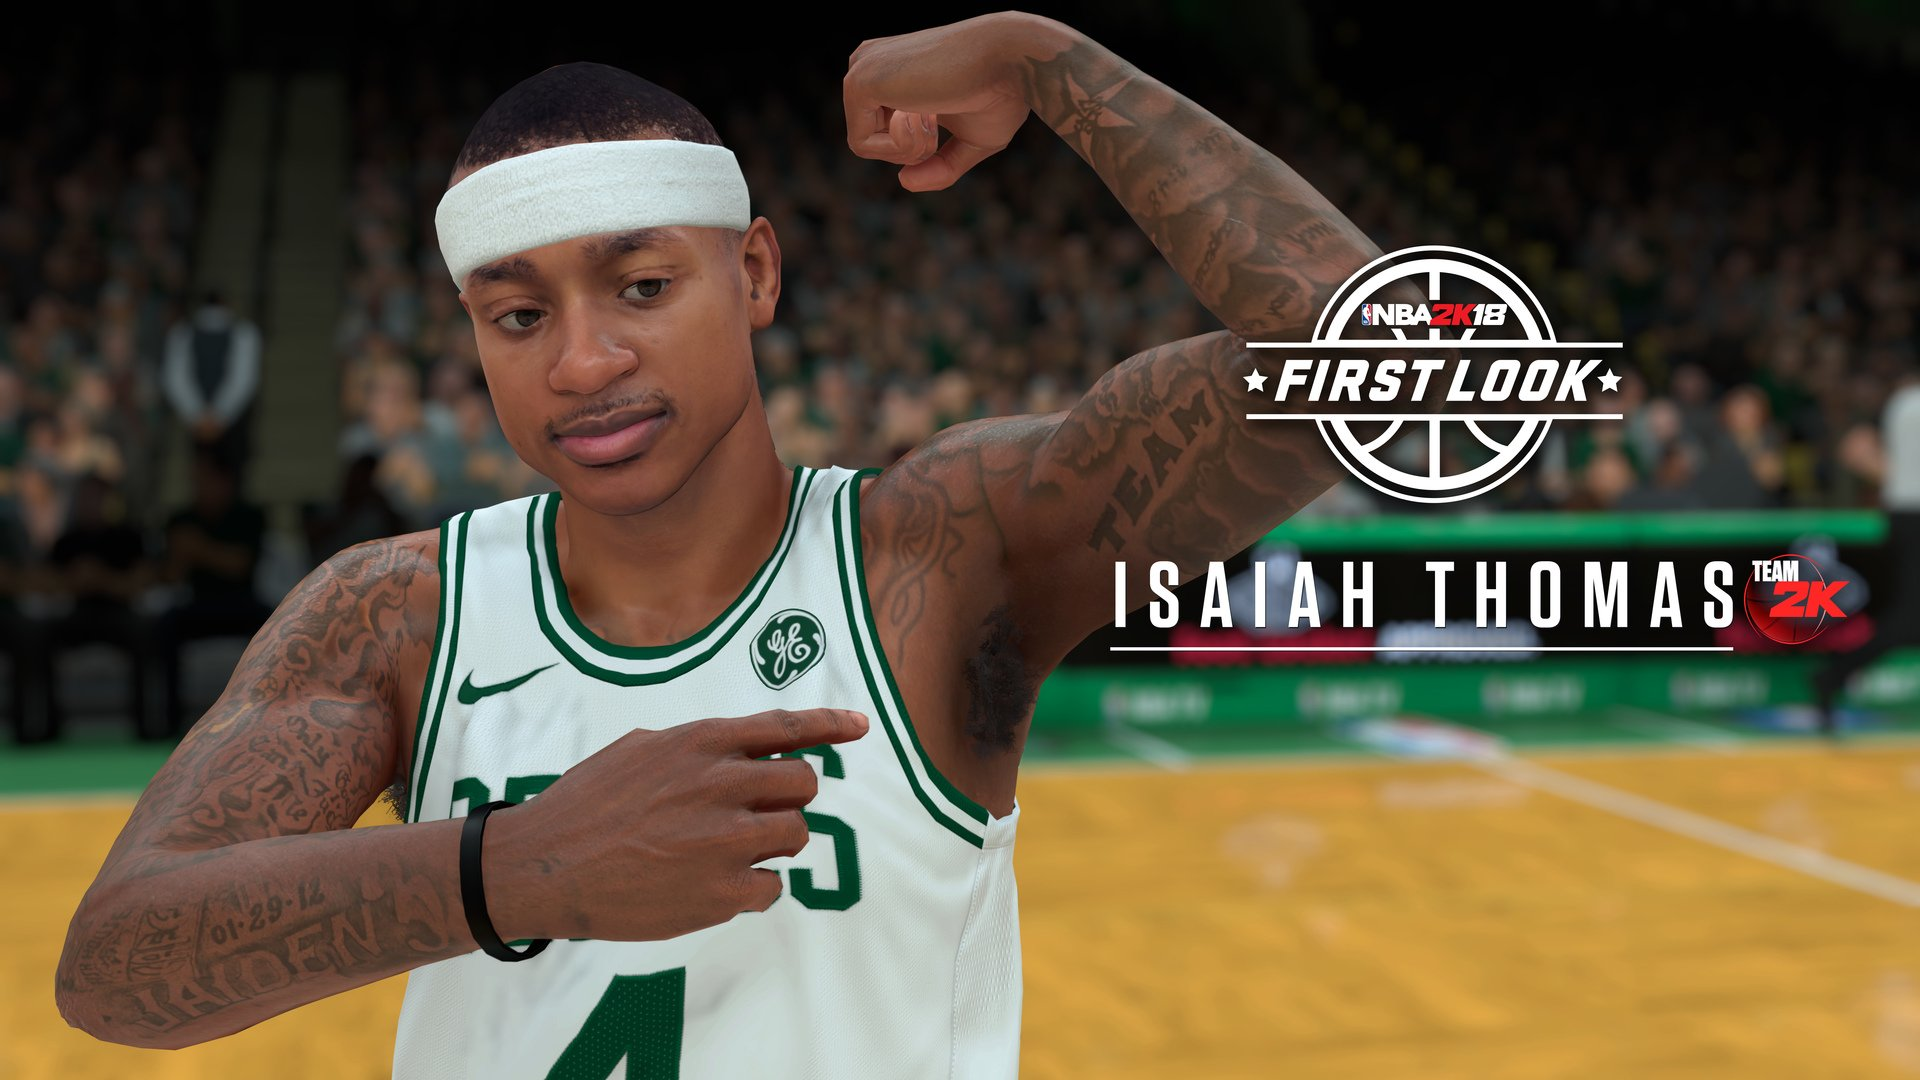 online store 559cb b6bab New Celtic jersey design revealed by NBA 2K18